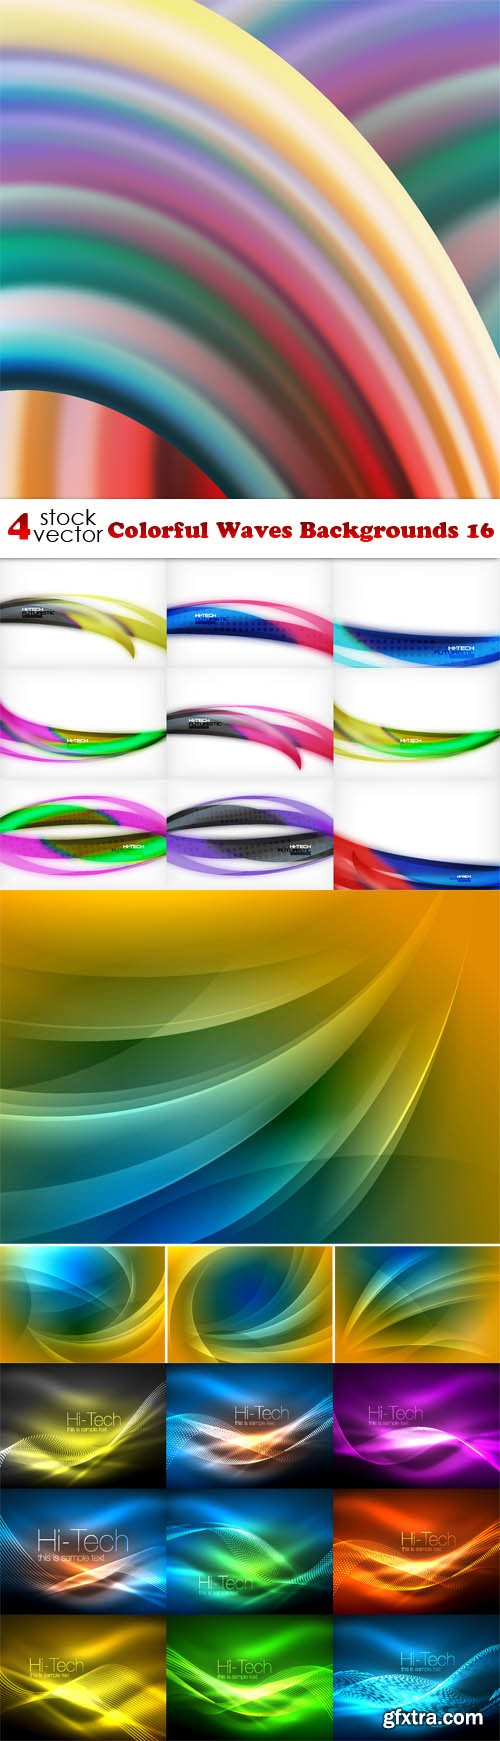 Vectors - Colorful Waves Backgrounds 16